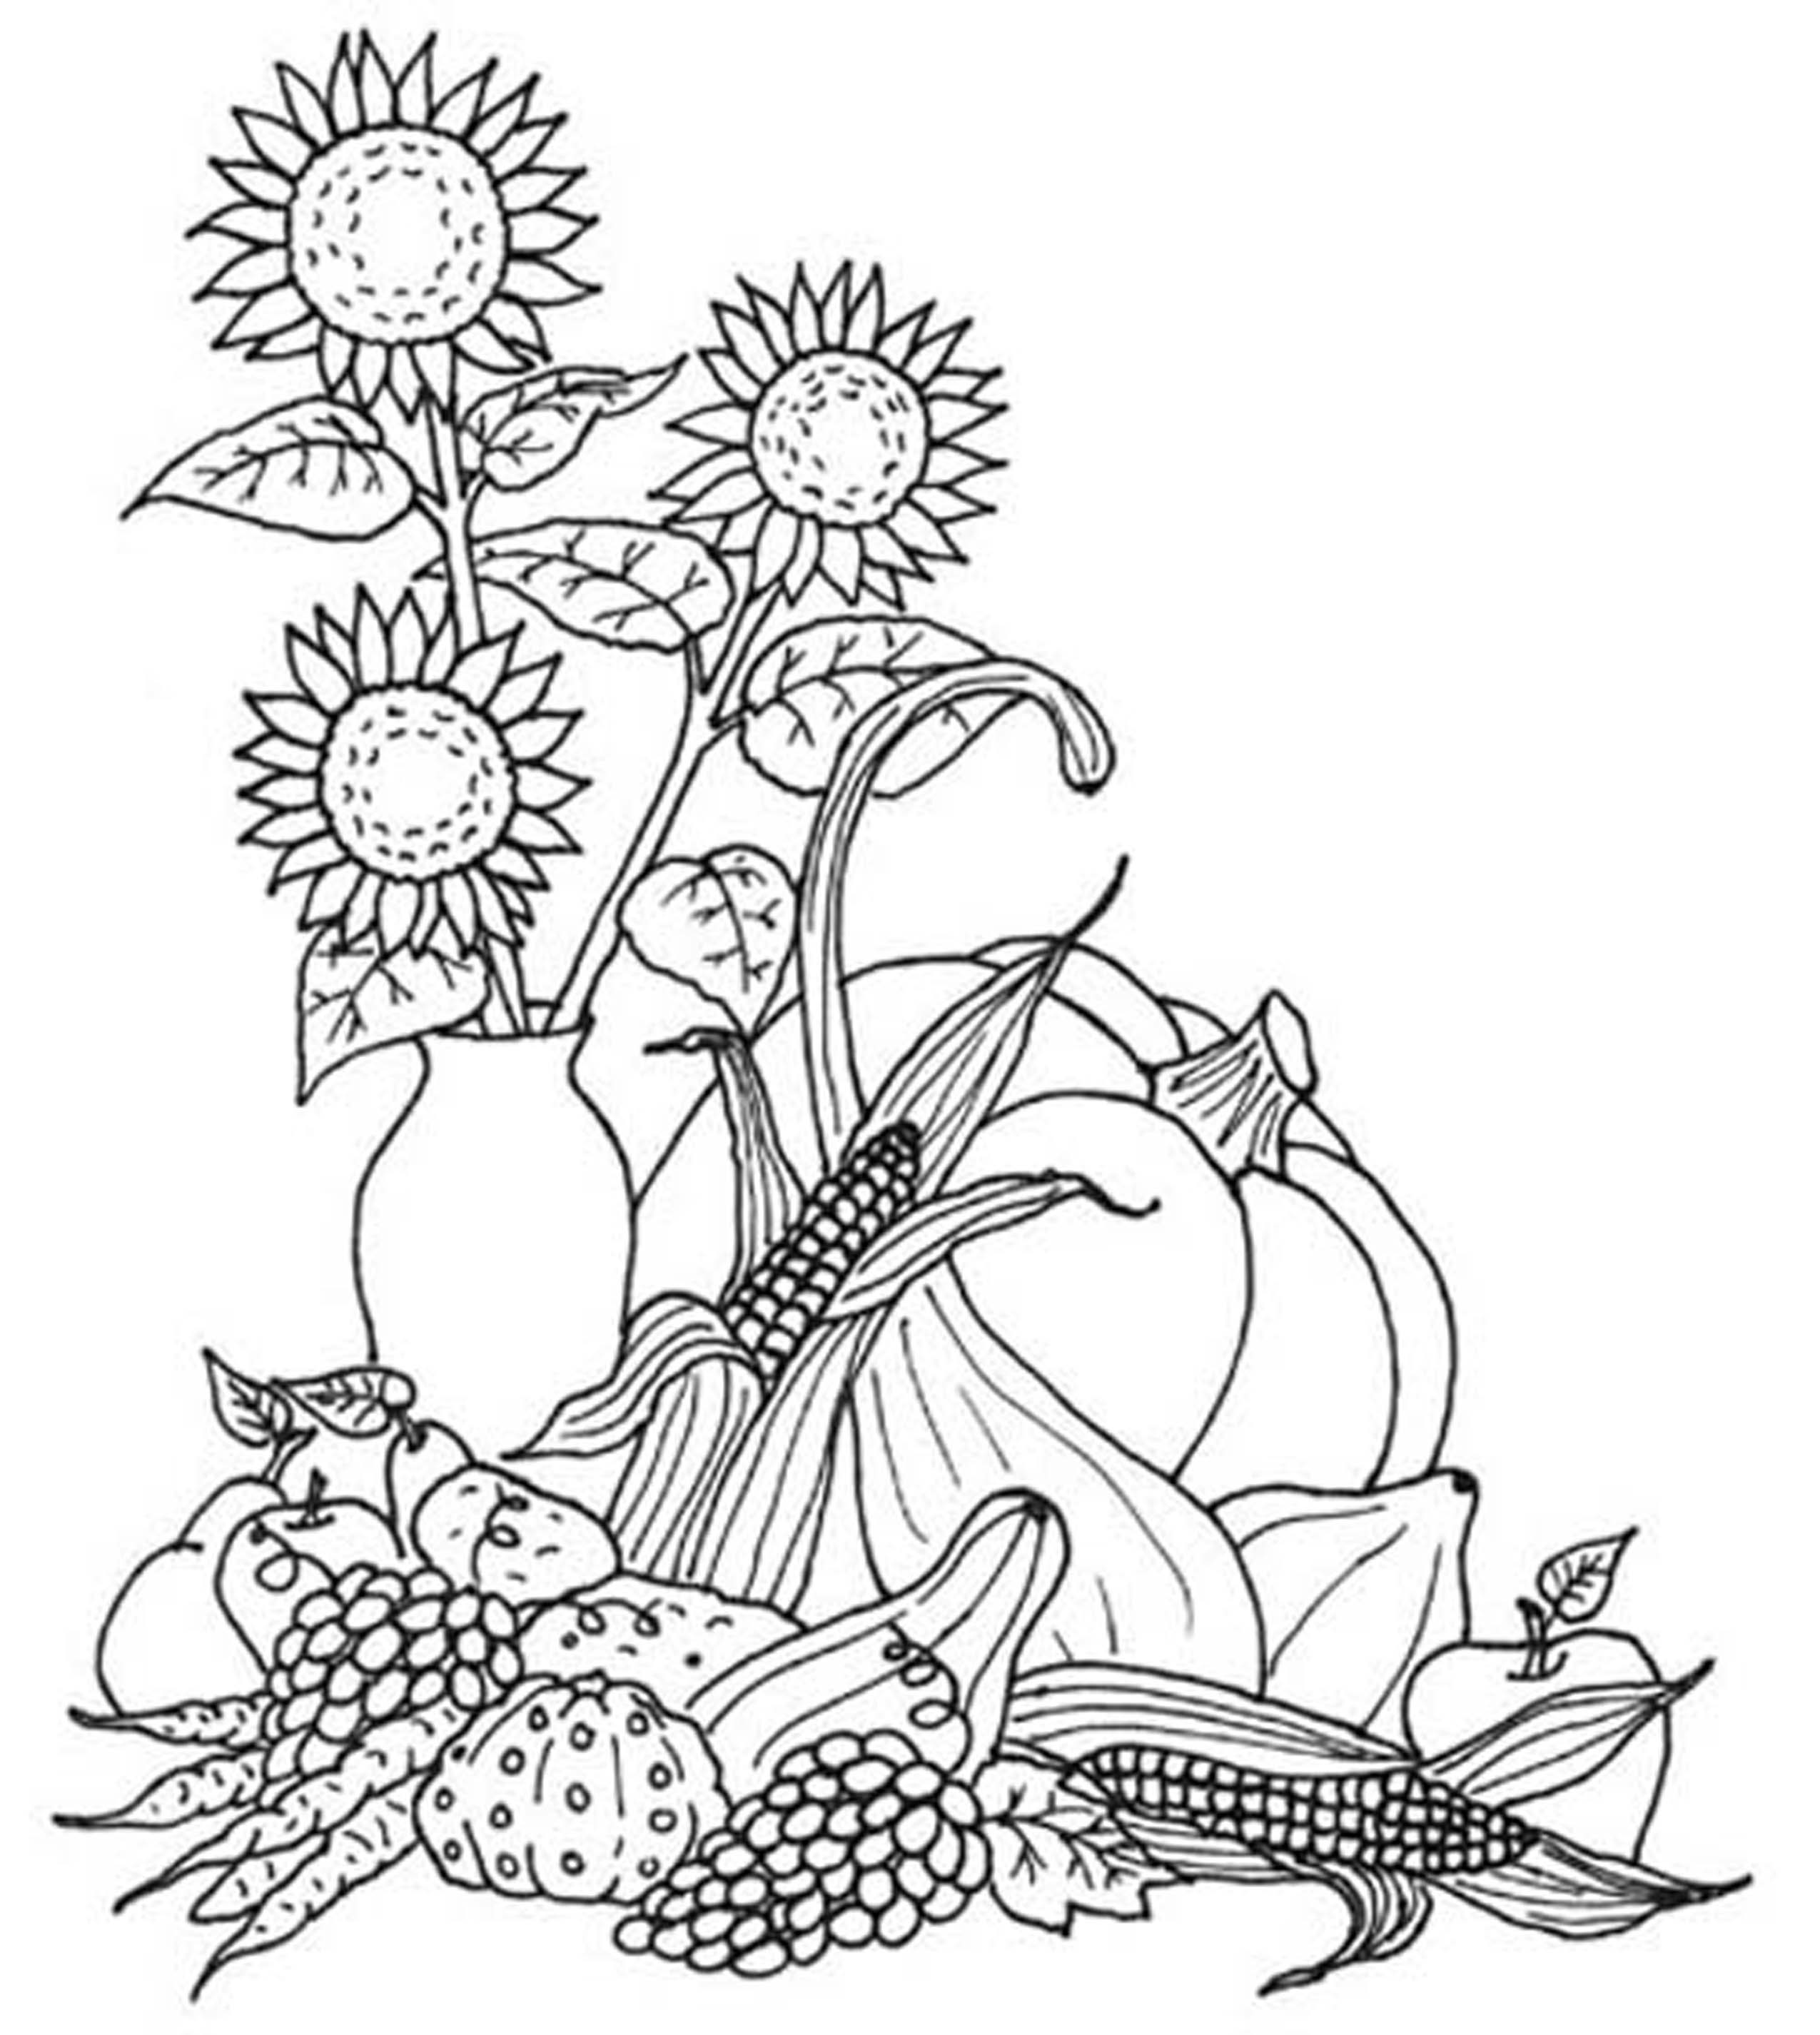 coloring pictures fall fall leaves coloring page crayolacom pictures coloring fall